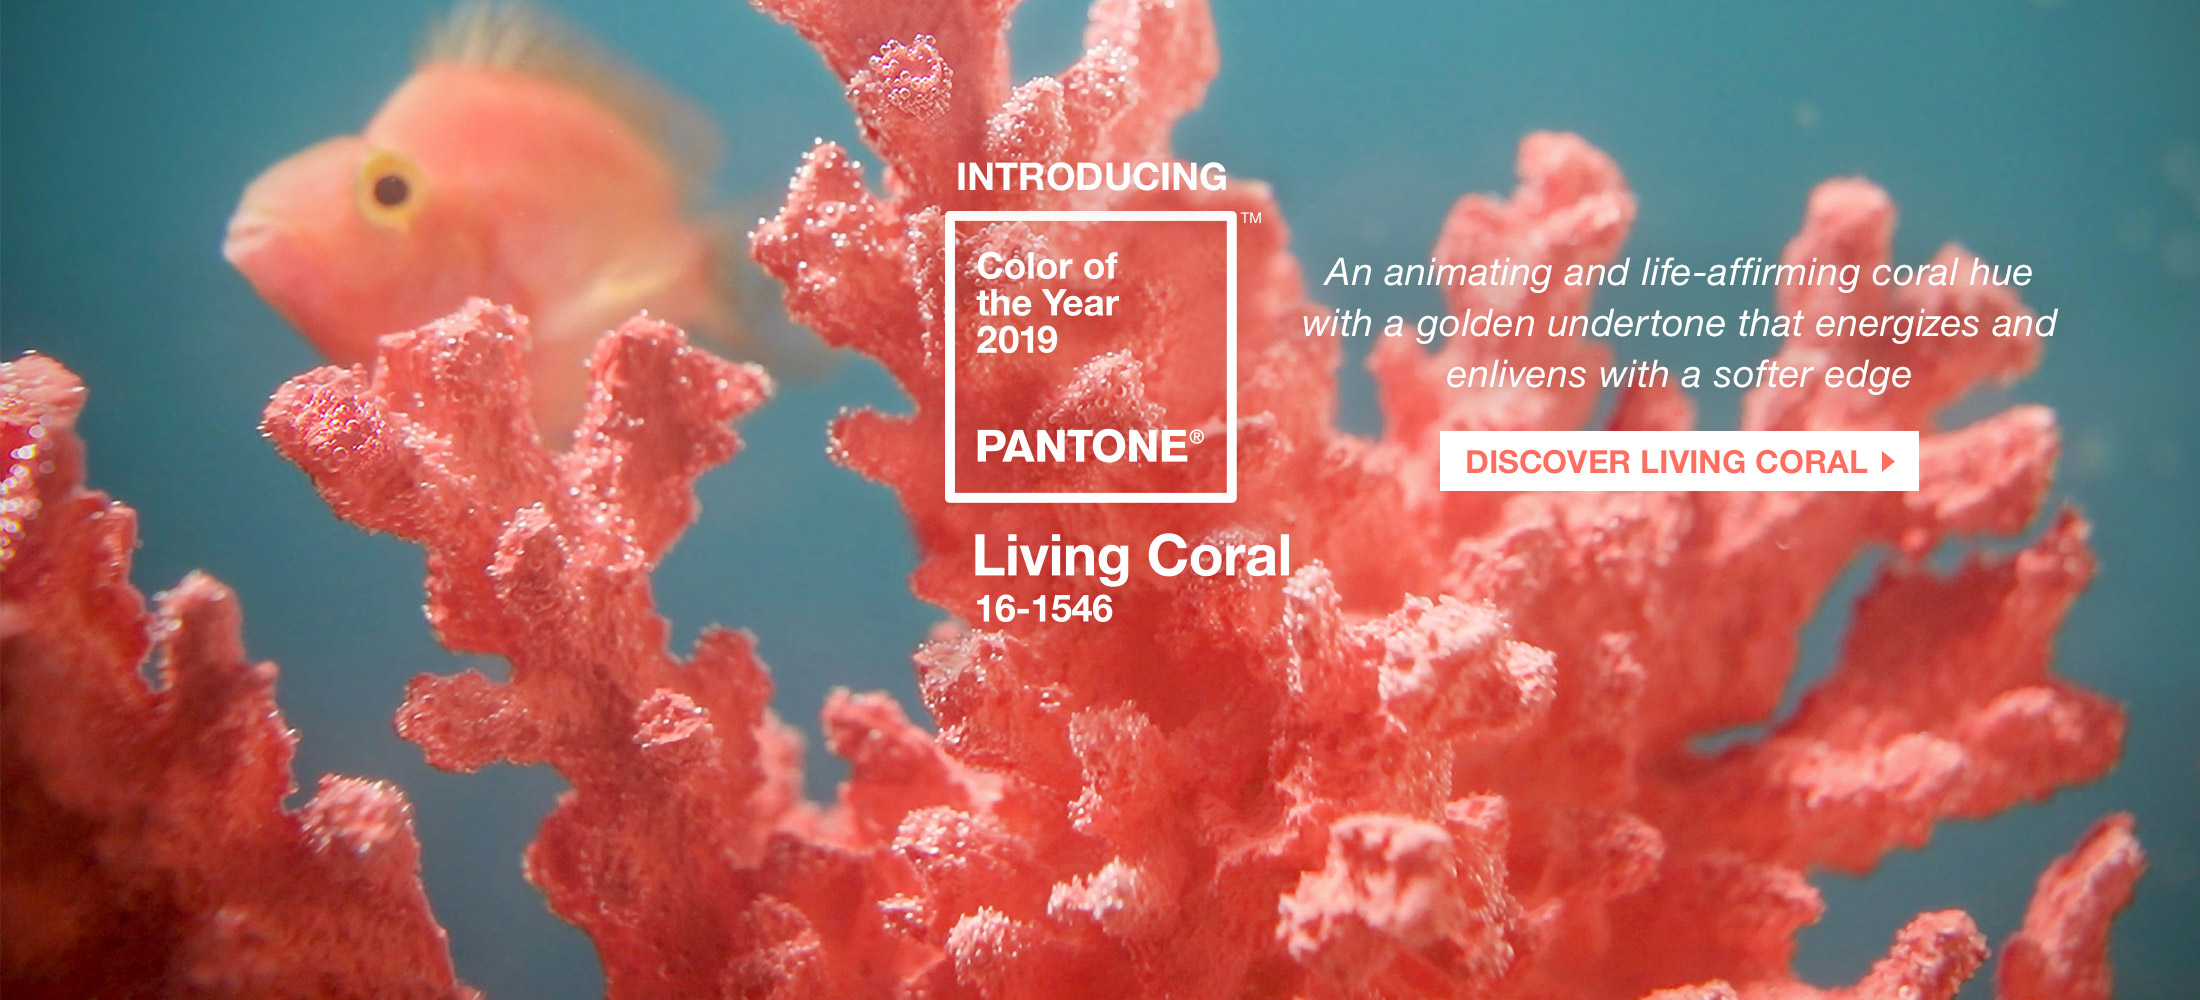 rgb-creative-ideas-pantone-color-of-the-year-2019-living-coral-homepage